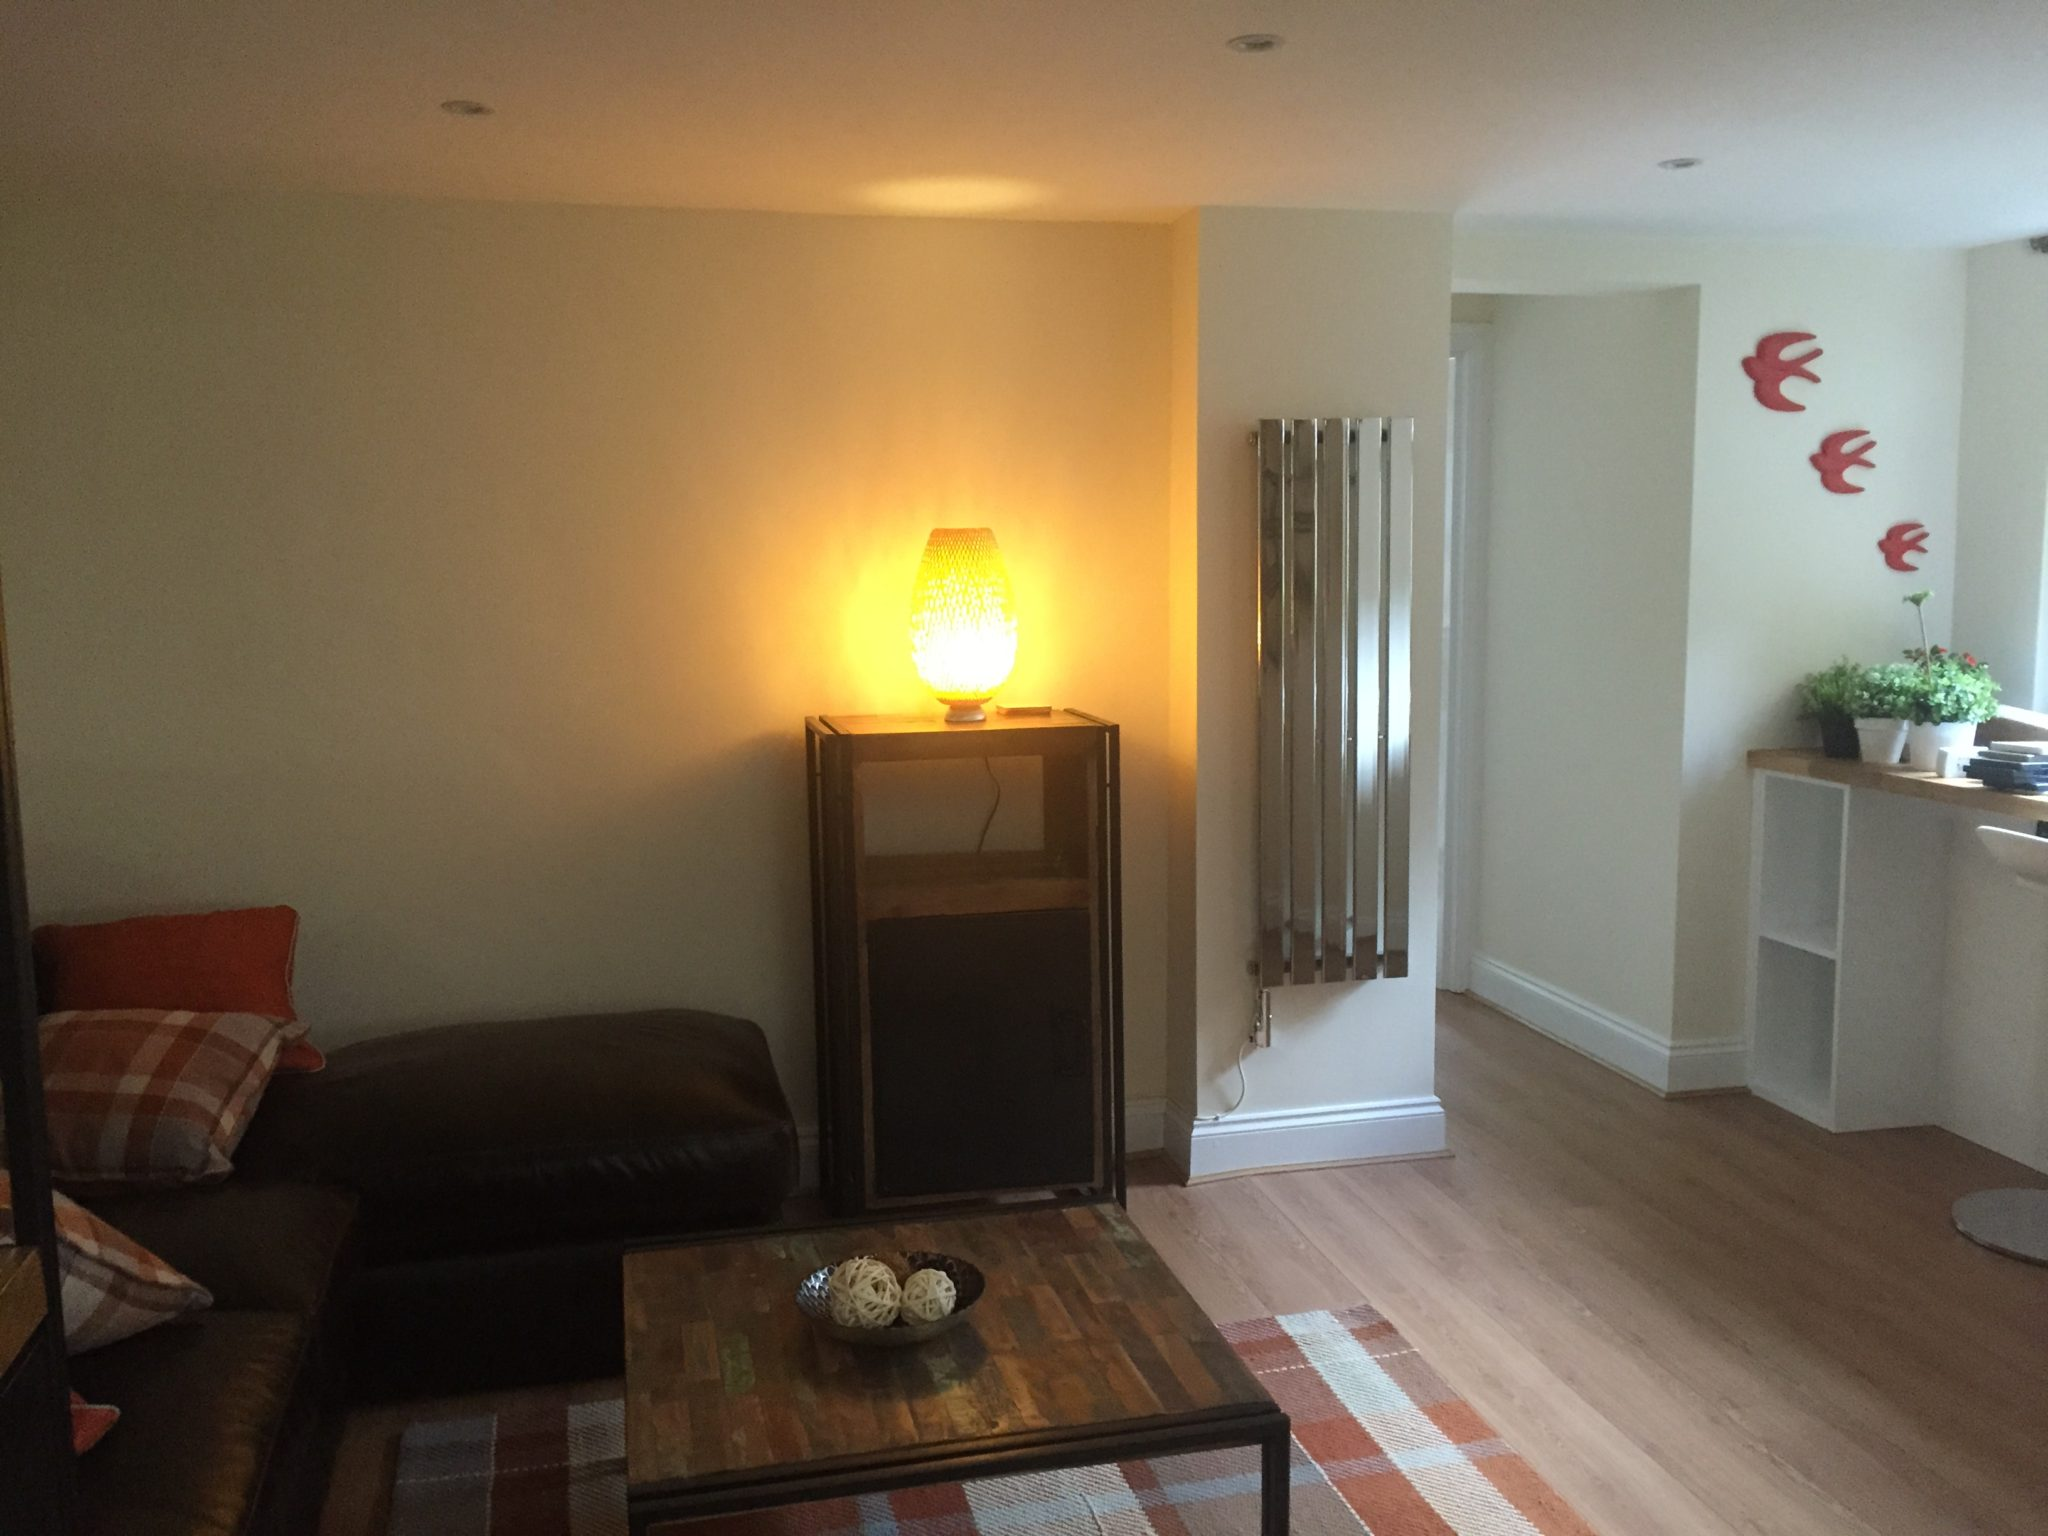 Serviced-Accommodation-Hertfordshire-available-now!-Book-cheap-Short-Let-Apartments-in-the-heart-of-Harpenden-with-24/7-check-in,-Courtyard-Garden-&-Fully-equipped-Kitchen-now!